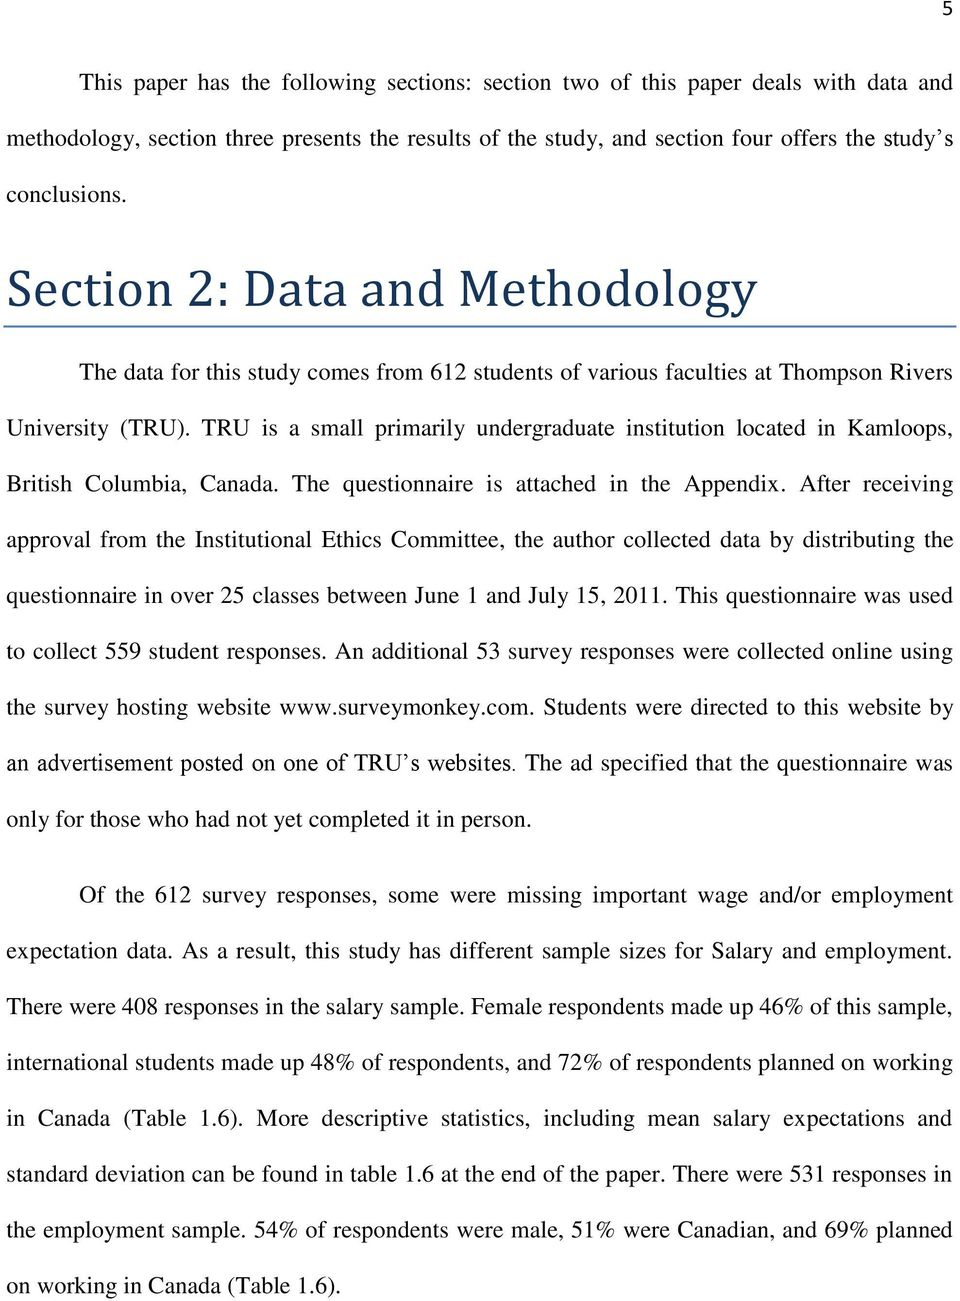 TRU is a small primarily undergraduate institution located in Kamloops, British Columbia, Canada. The questionnaire is attached in the Appendix.